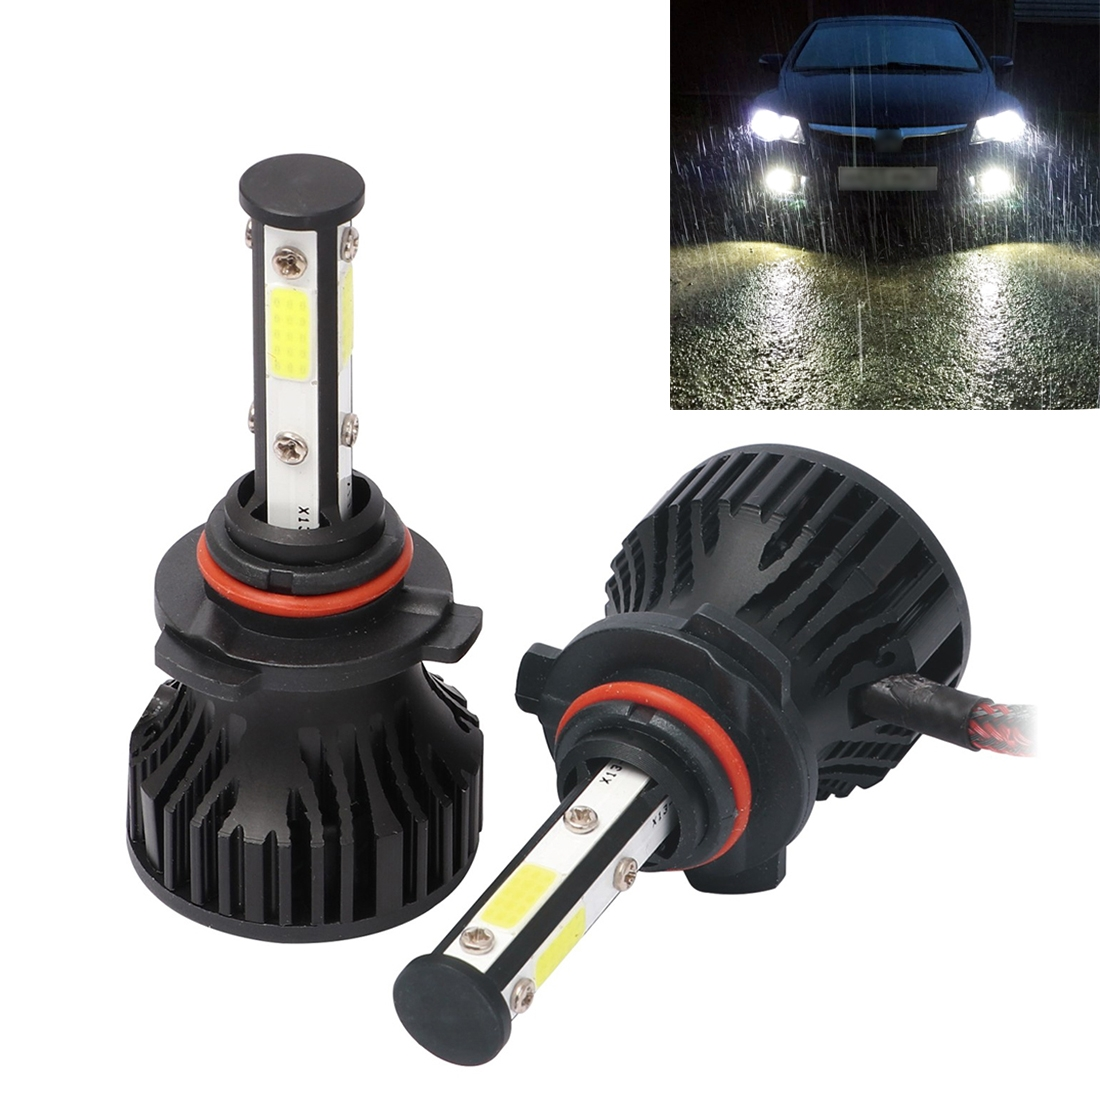 2 PCS X15 9005 DC9-32V 26W 6500K 3000LM IP67 Car LED Headlight Lamps / Fog Light (White Light)